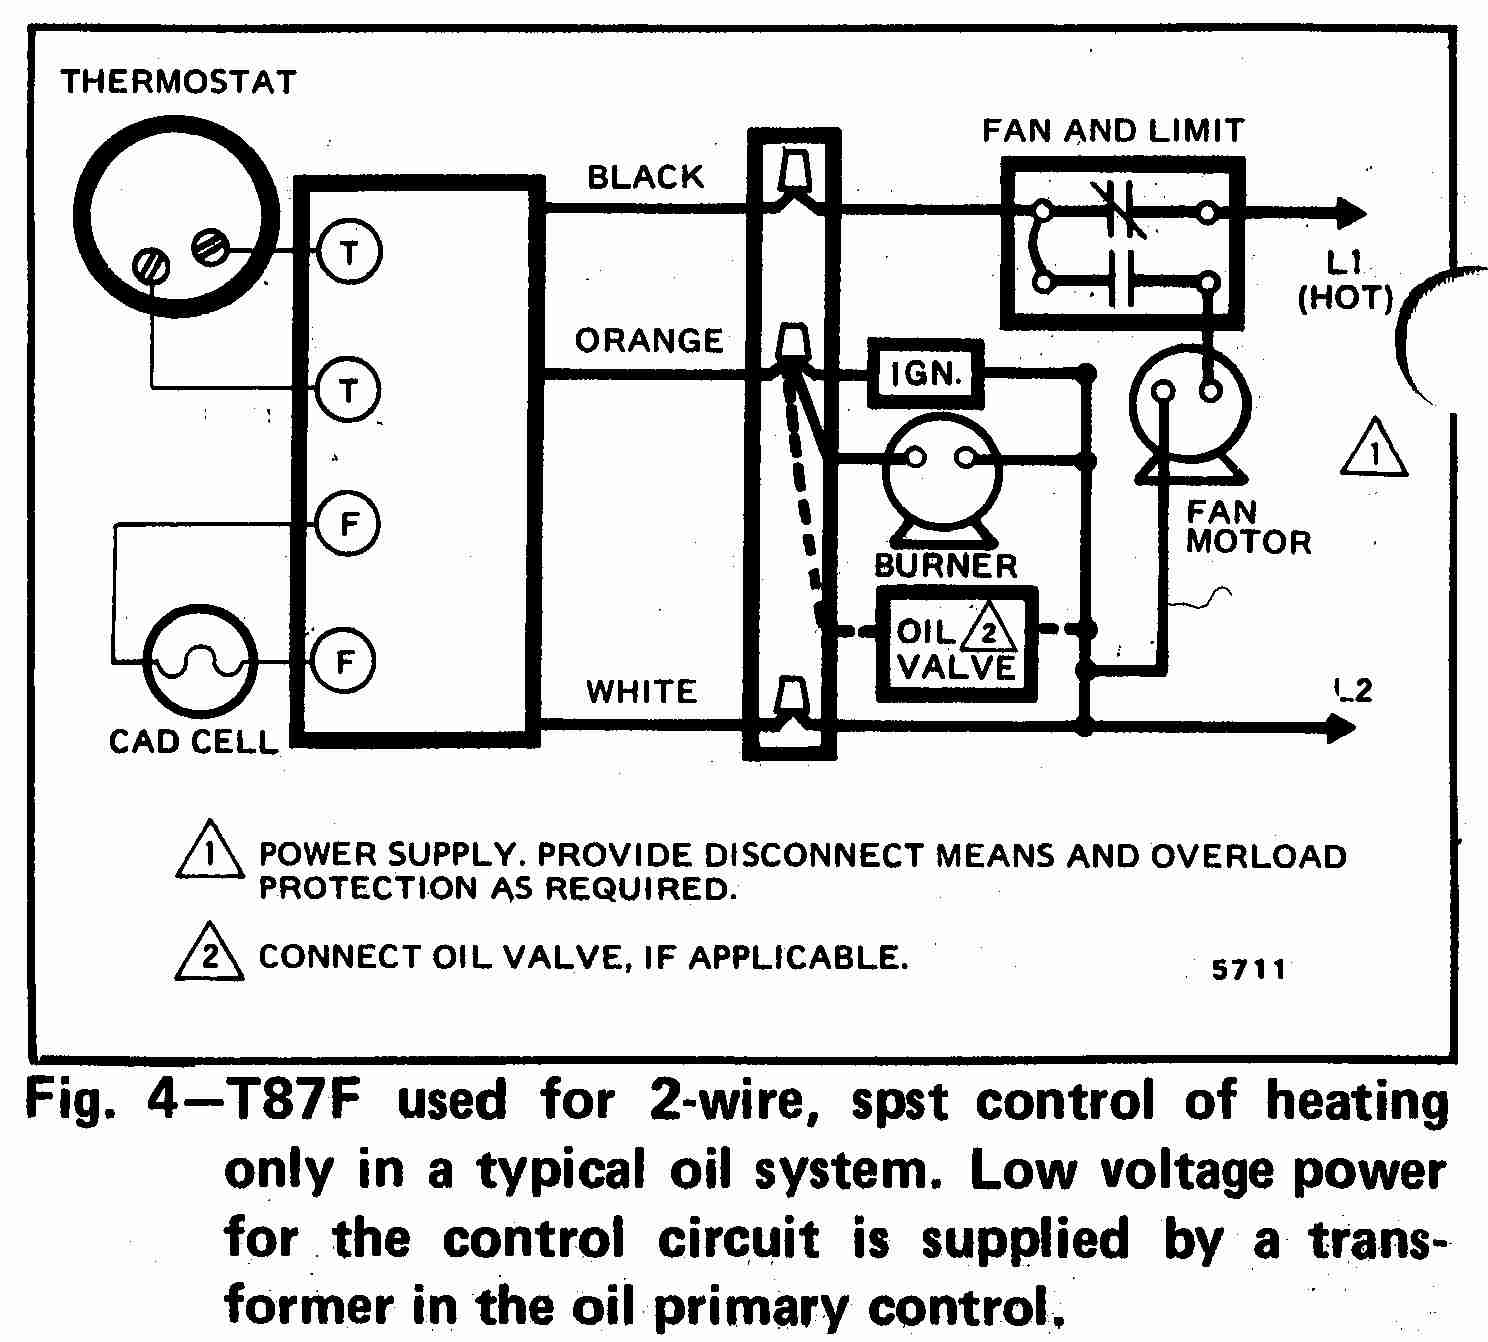 TT_T87F_0002_2W_DJF room thermostat wiring diagrams for hvac systems honeywell thermostat wiring diagram at beritabola.co